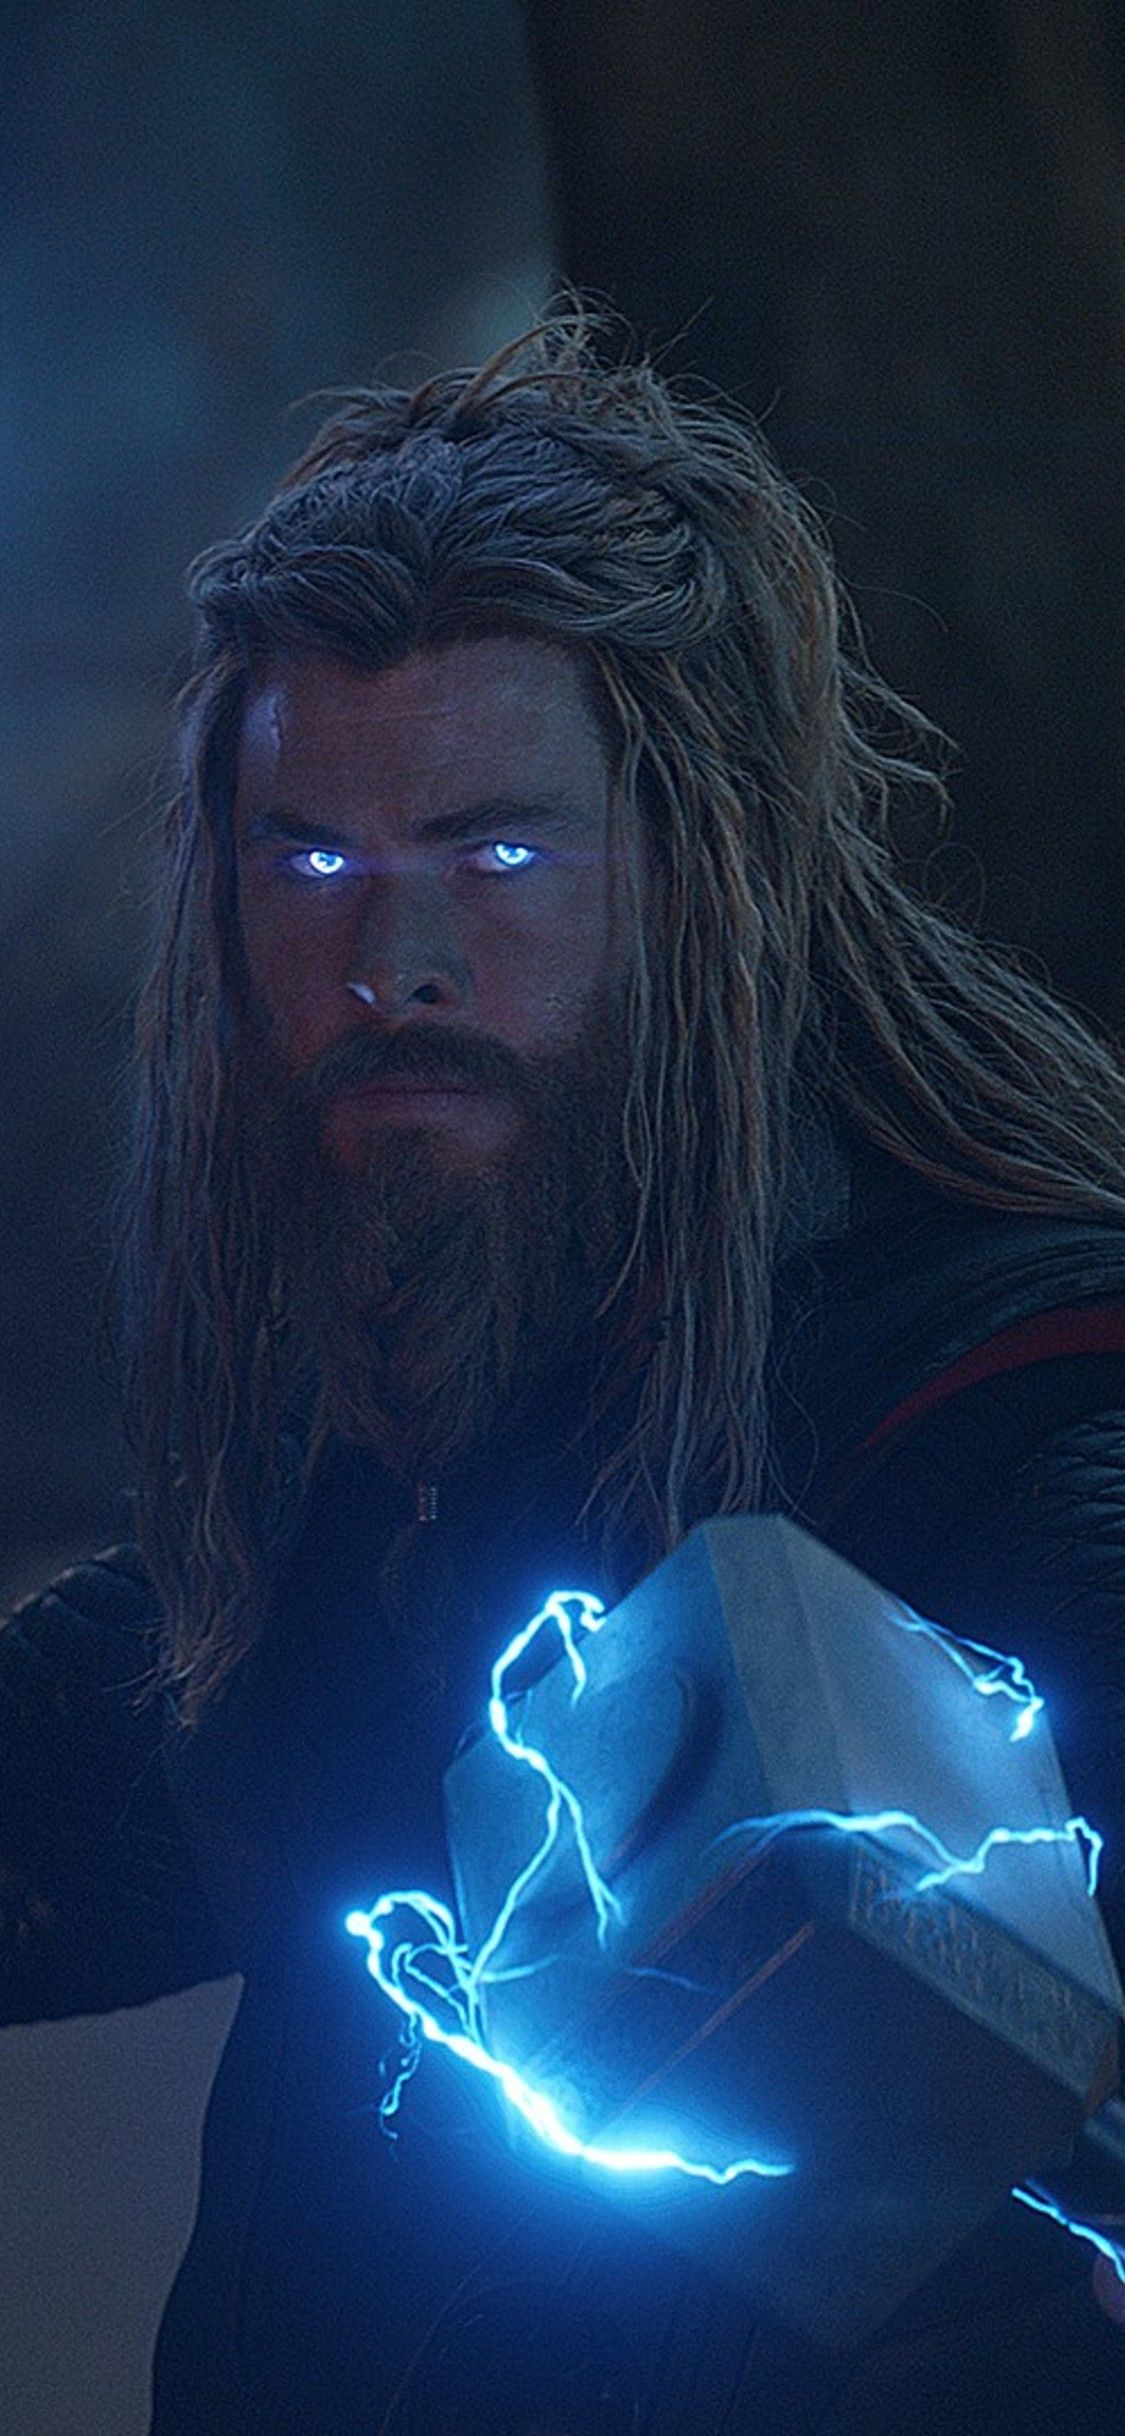 1125x2436 Thor Avengers Endgame Final Battle Scene Iphone Xs Iphone 10 Iphone X Hd 4k Wallpapers Images Backg In 2020 Marvel Thor Marvel Superheroes Marvel Cinematic